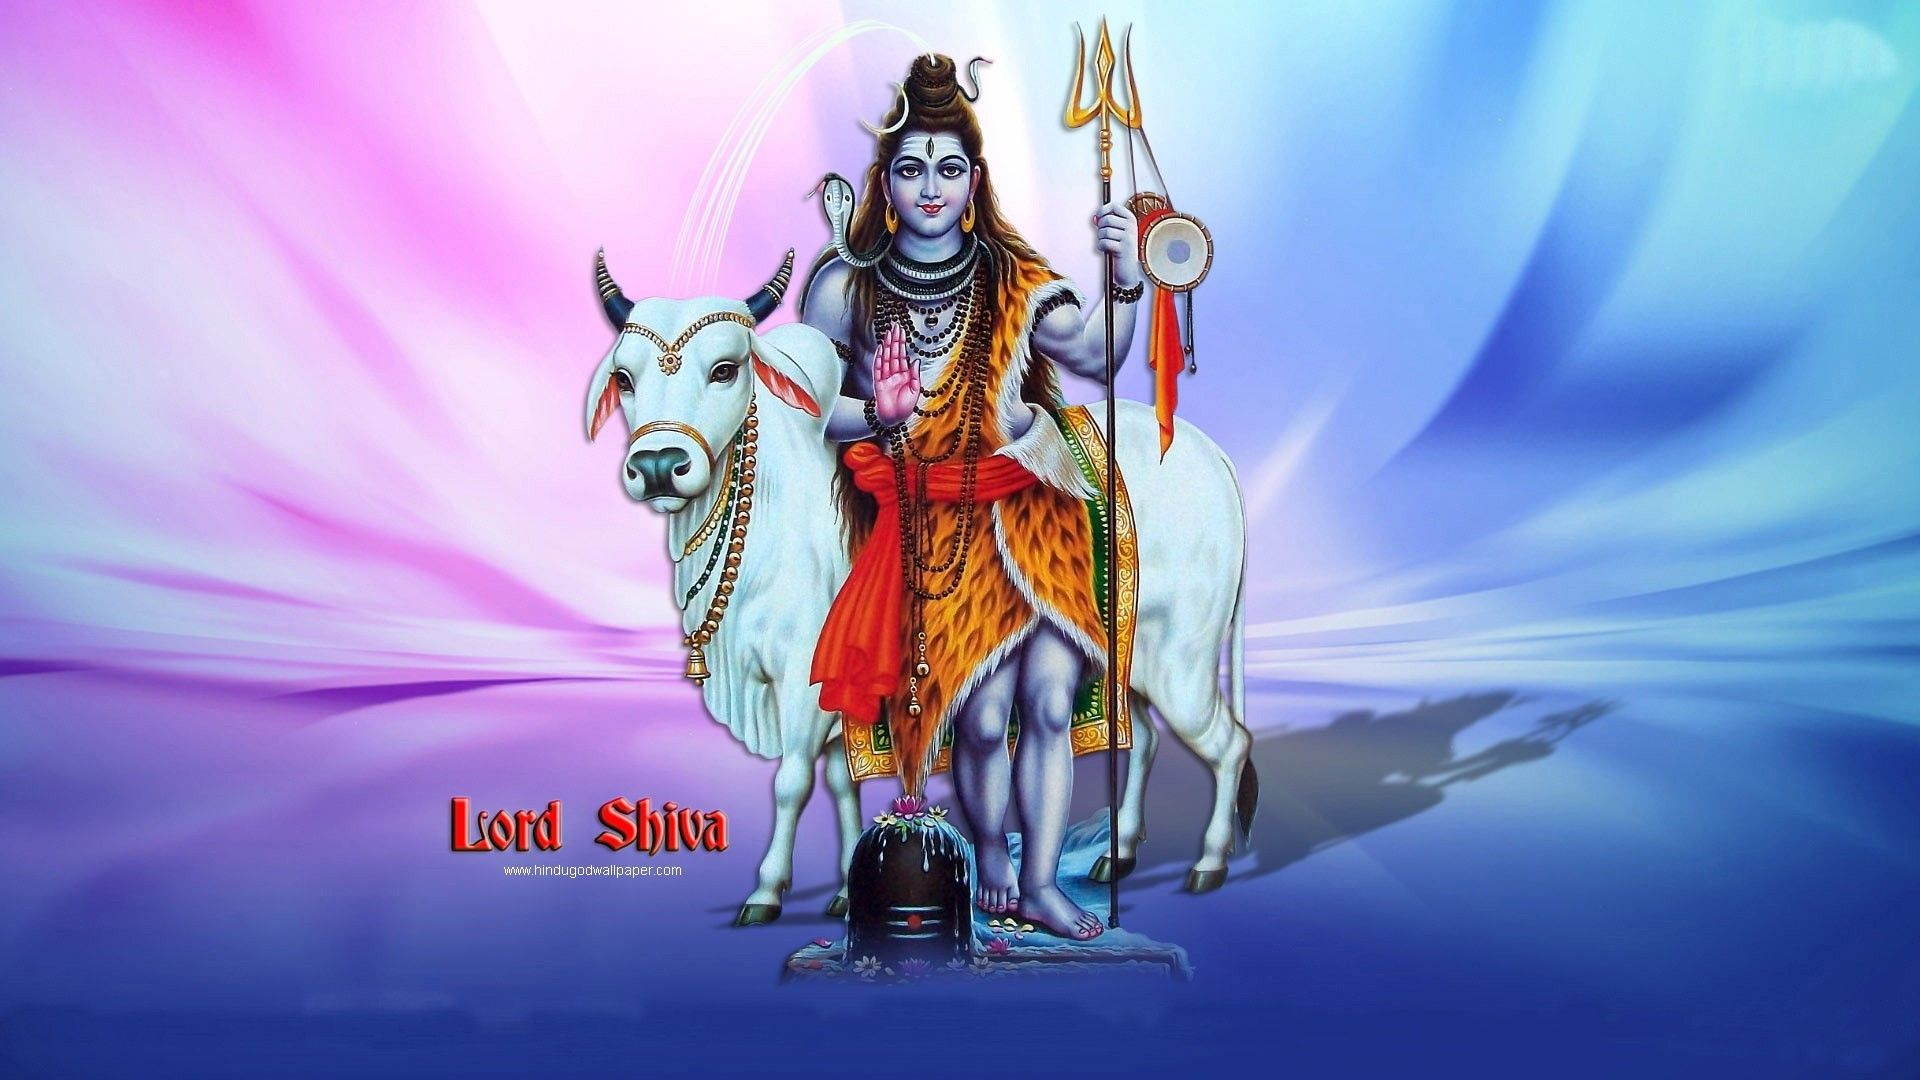 Shiva Wallpaper Hindu Wallpaper Lord Shiva Ji Wallpapers: 1920x1080 SHIVA HD WALLPAPERS, 1080P PICTURES, IMAGES HD